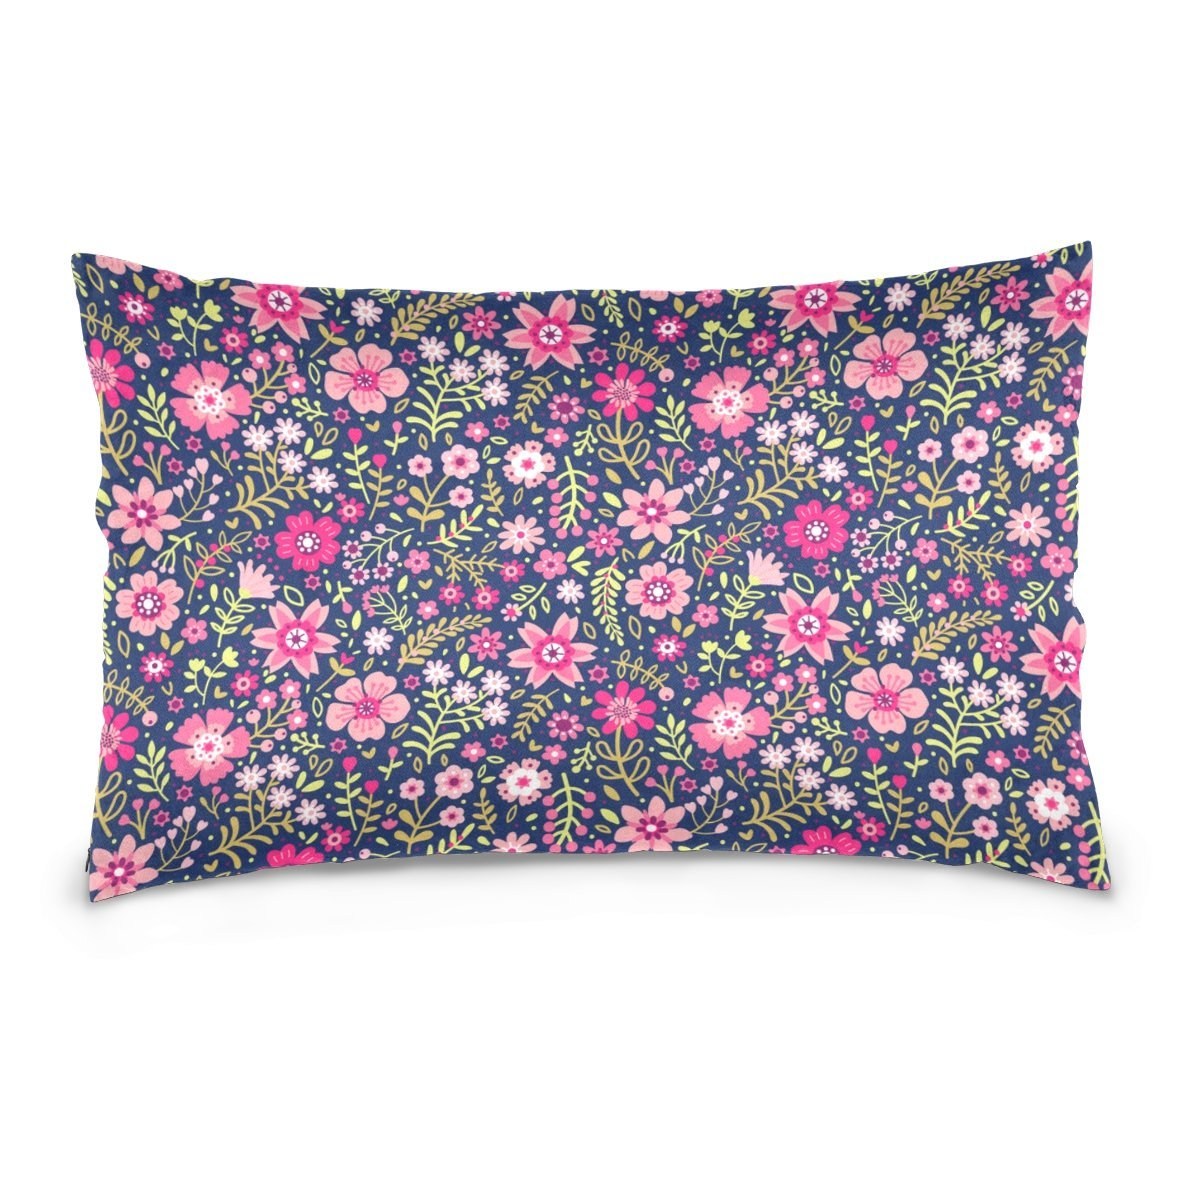 Cotton Velvet Pillowcases Small Pink Ditsy Flower Soft Pillow Protector with Hidden Zipper 20 x 36 Inch